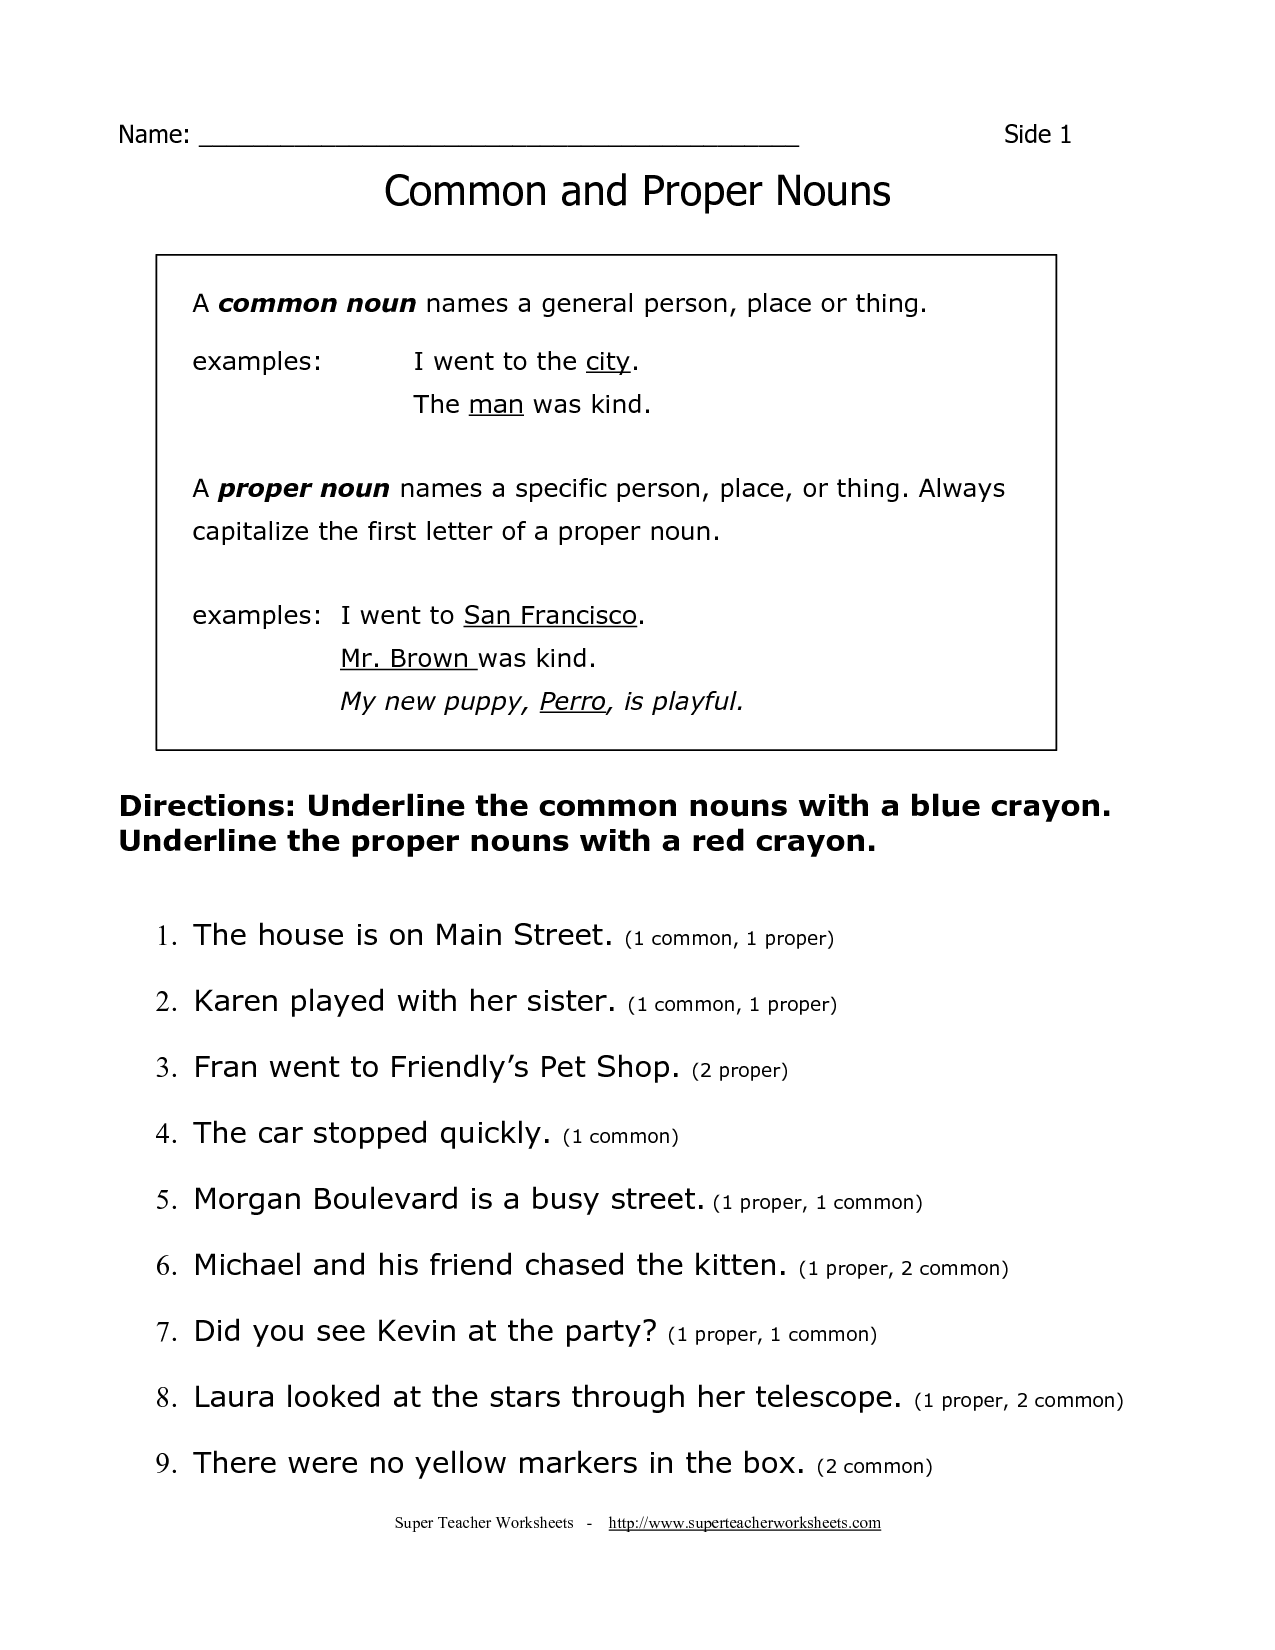 Common Proper Nouns Worksheet